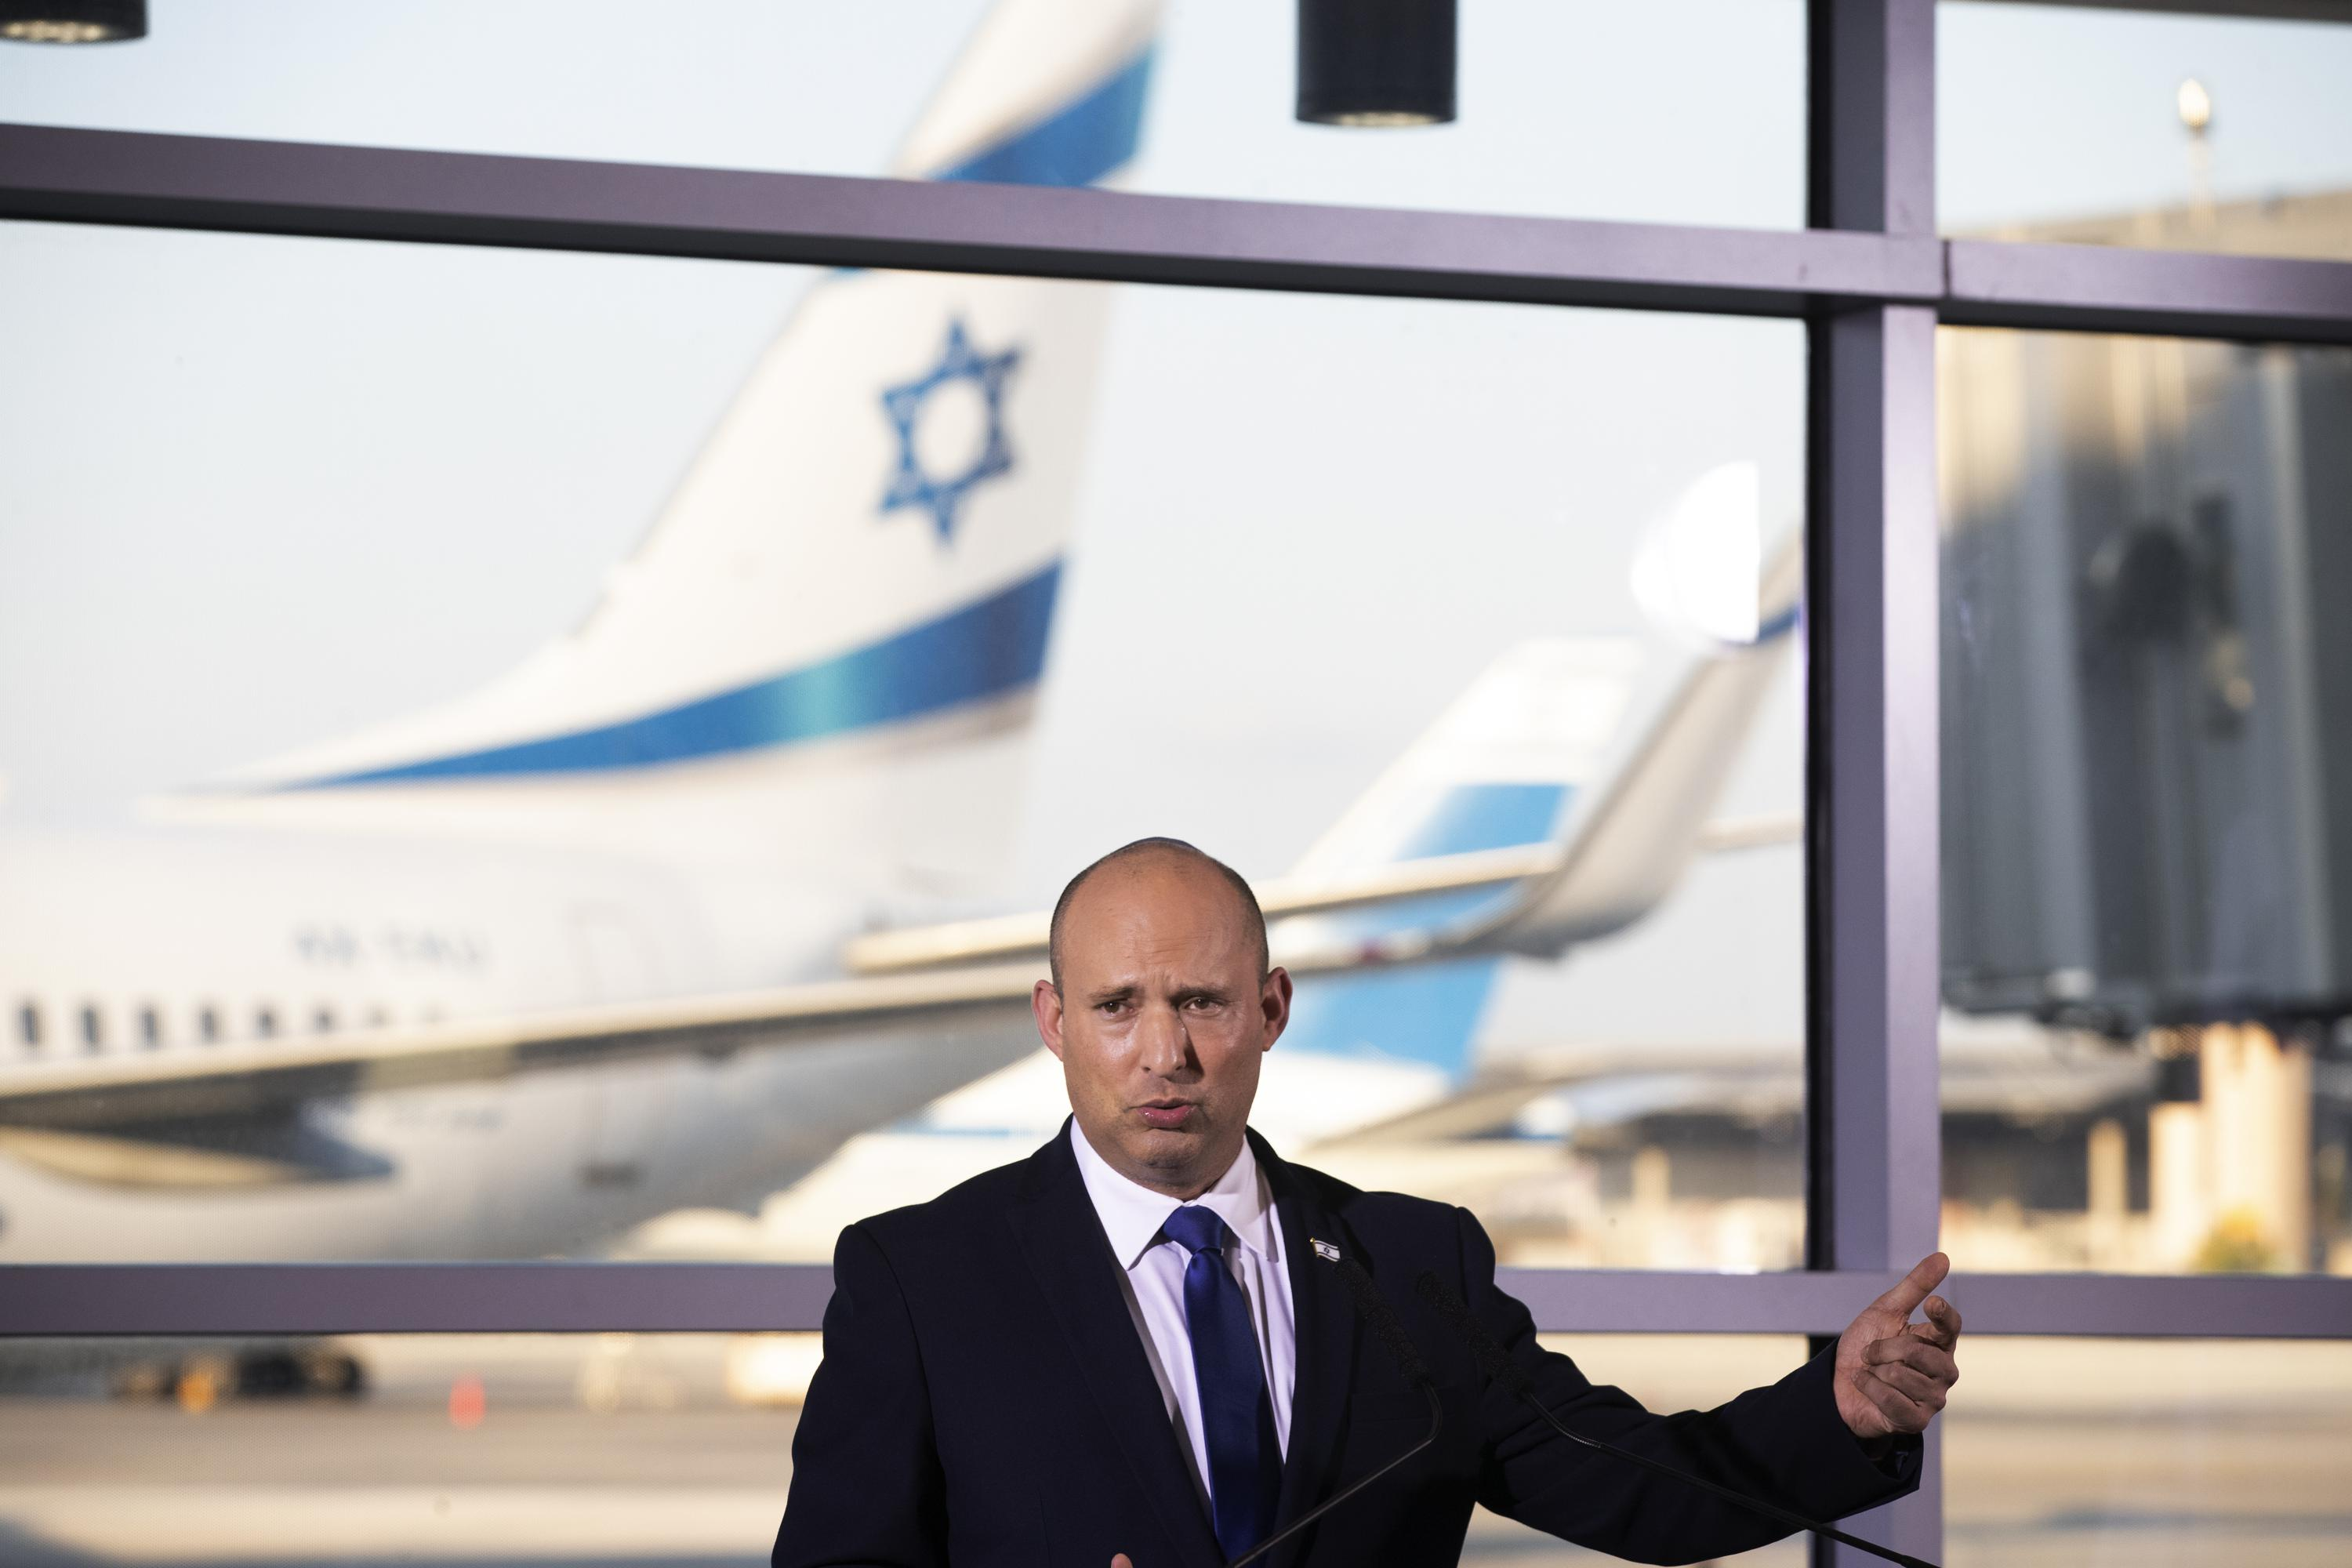 The Latest: Israel delays reopening of borders to tourists